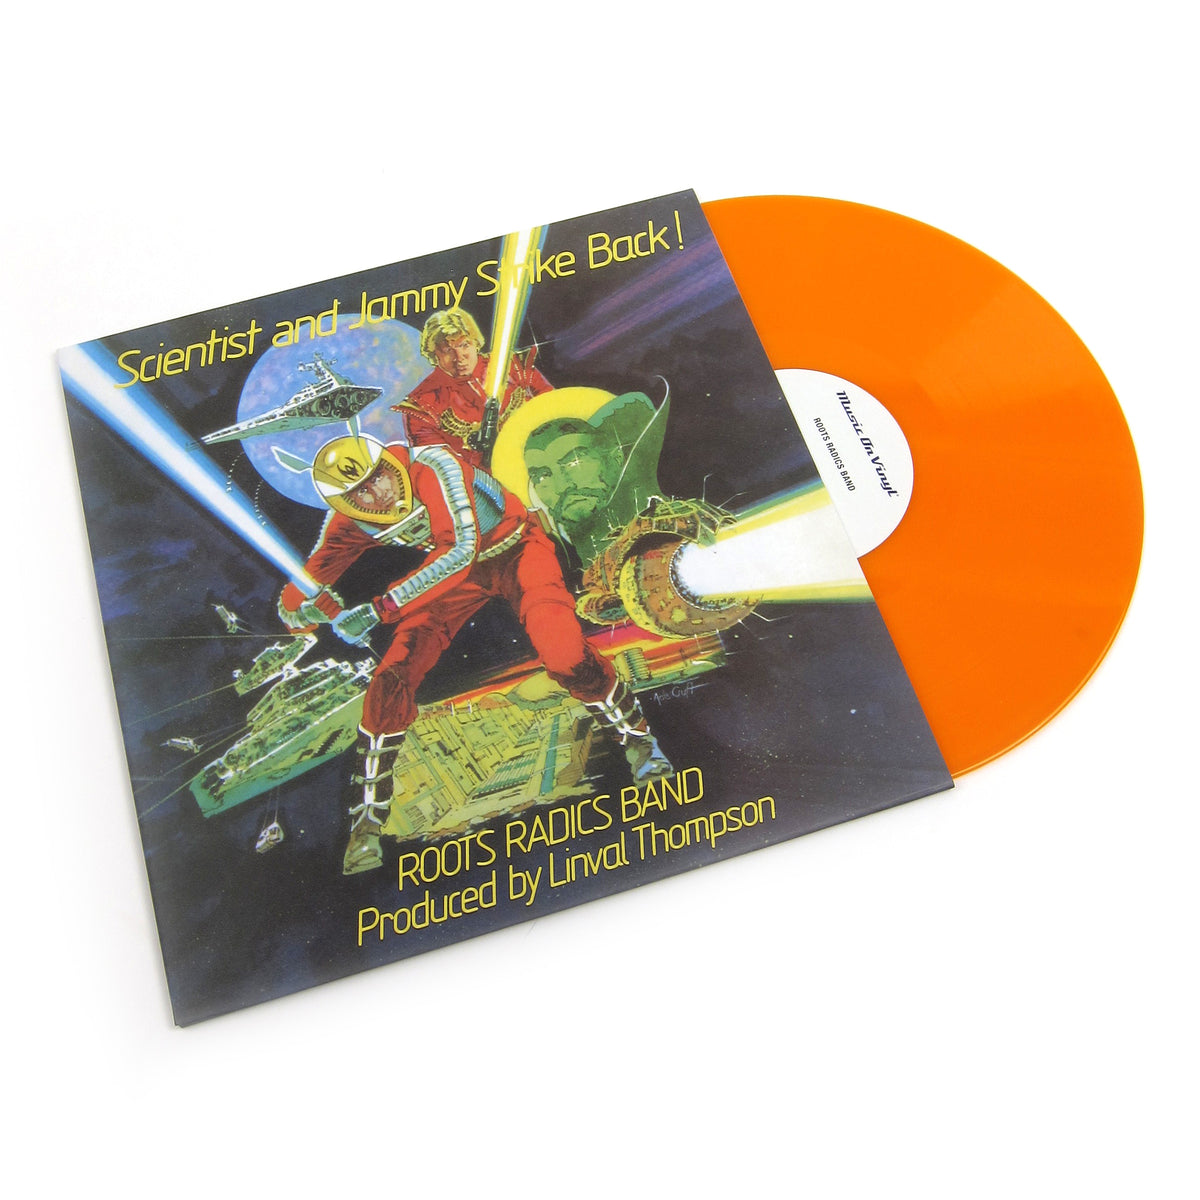 Scientist & Prince Jammy: Scientist and Jammy Strike Back! (Music On Vinyl 180g, Colored Vinyl) Vinyl LP